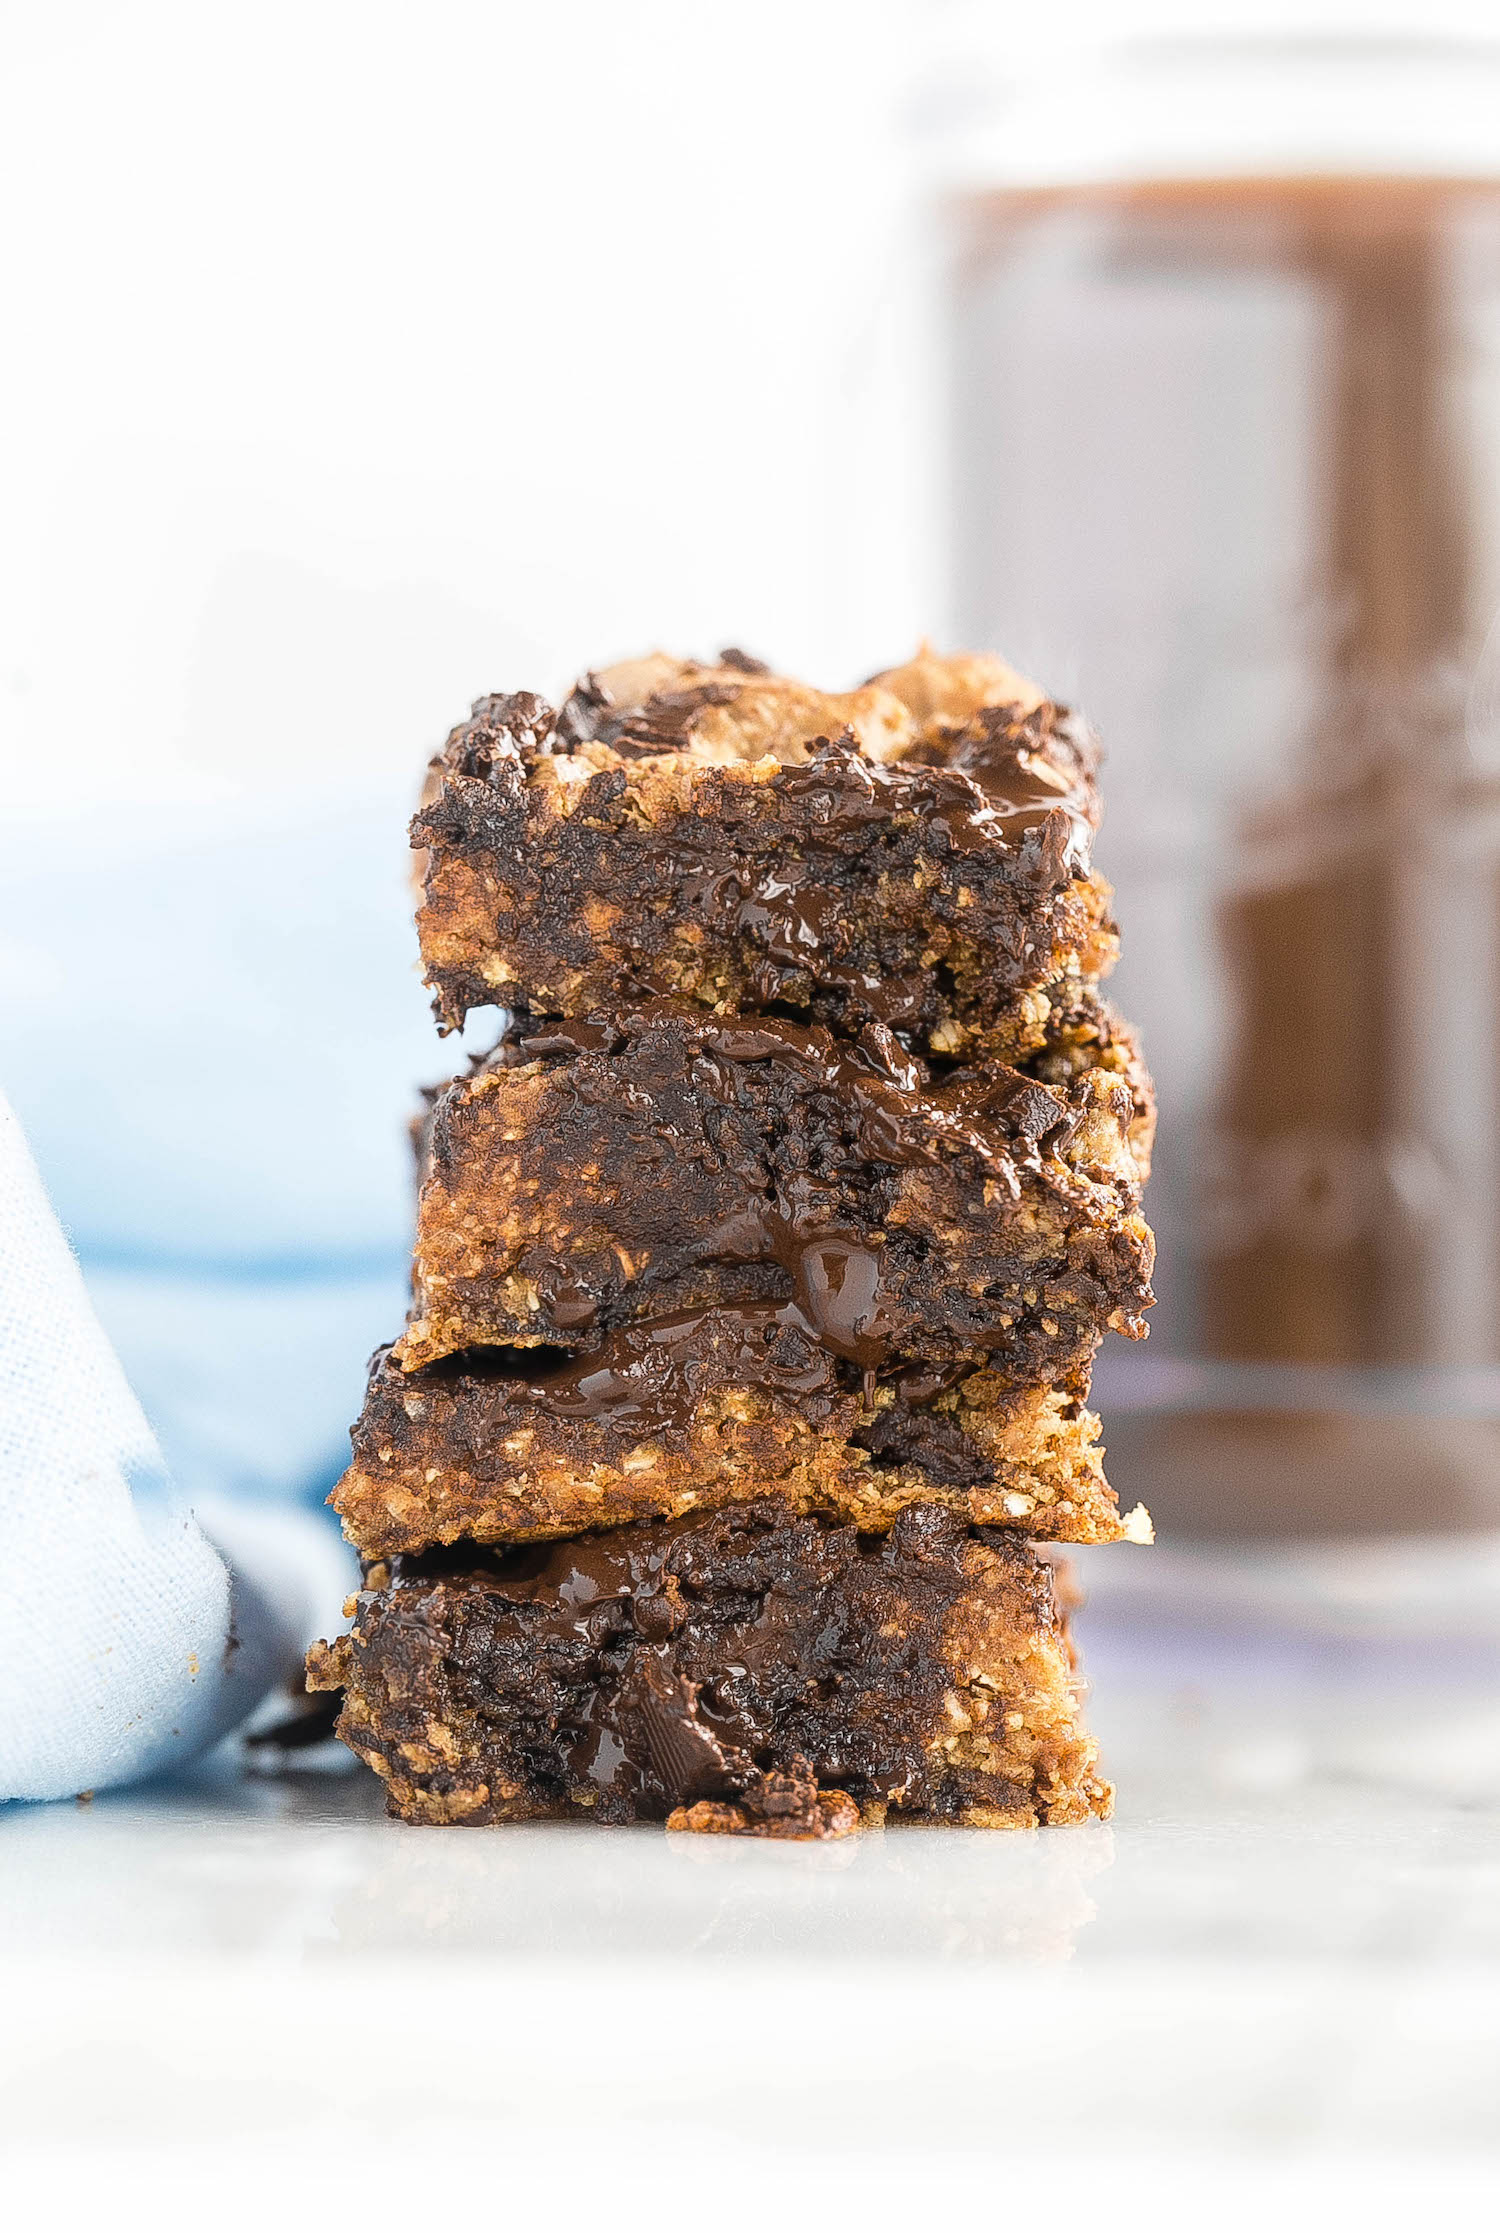 Wholesome Almond Butter Oat Chocolate Chip Bars: soft, gooey, rich flourless bars made with dates, oats, almond butter, and chocolate chunks. Dairy and refined sugar free! | TrufflesandTrends.com